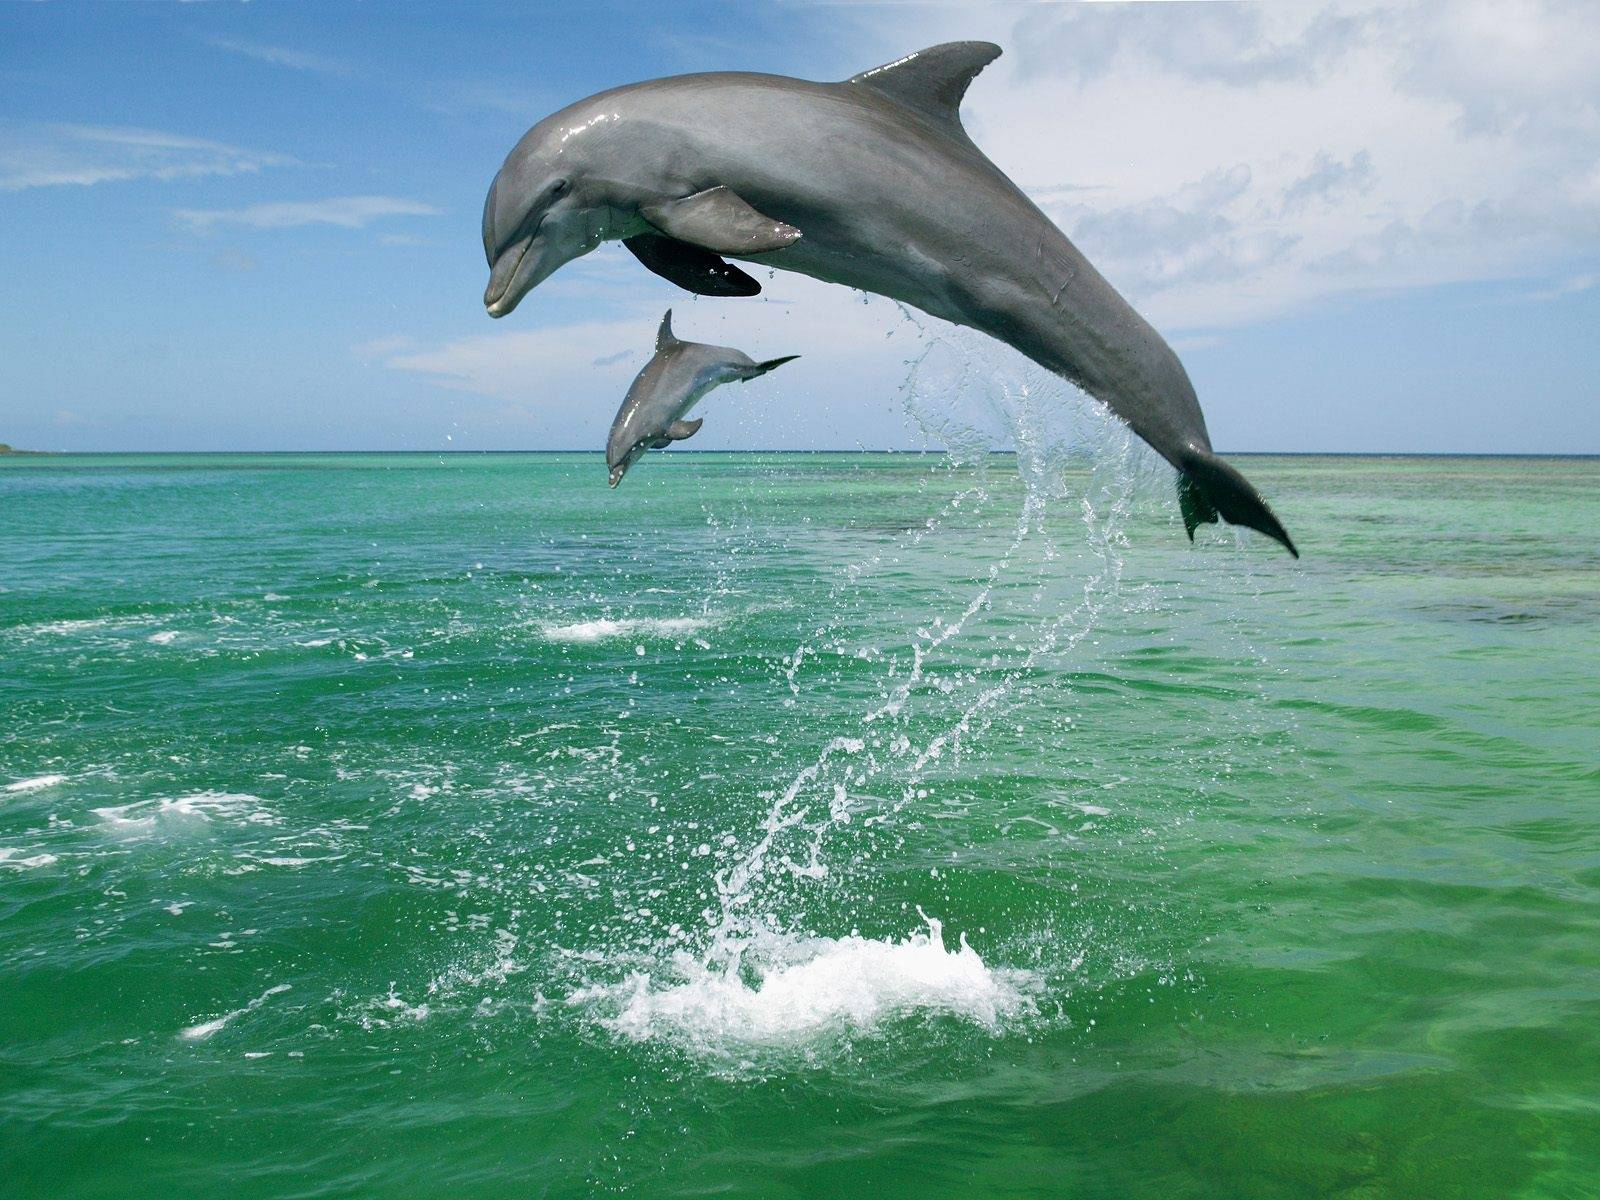 HD Dolphin Wallpapers   HD Animal Wallpapers 1600x1200